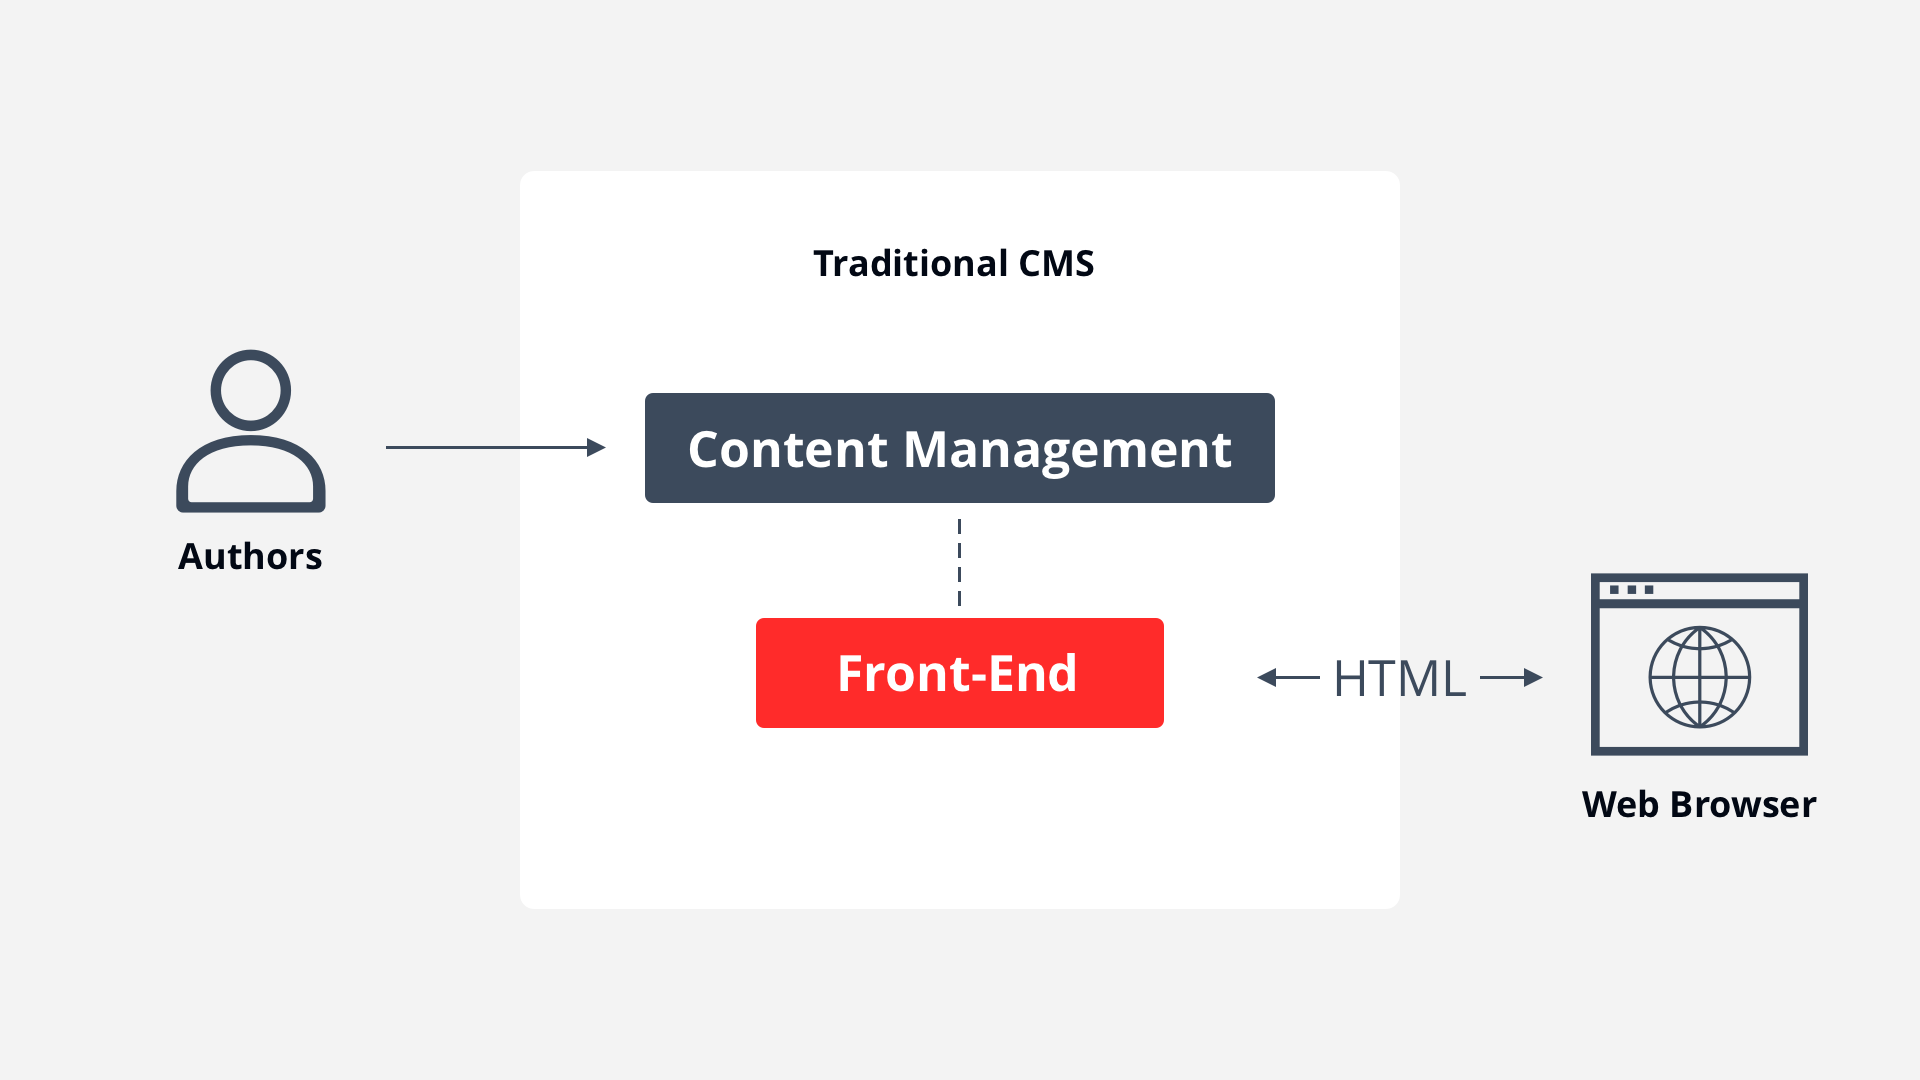 What is a traditional CMS